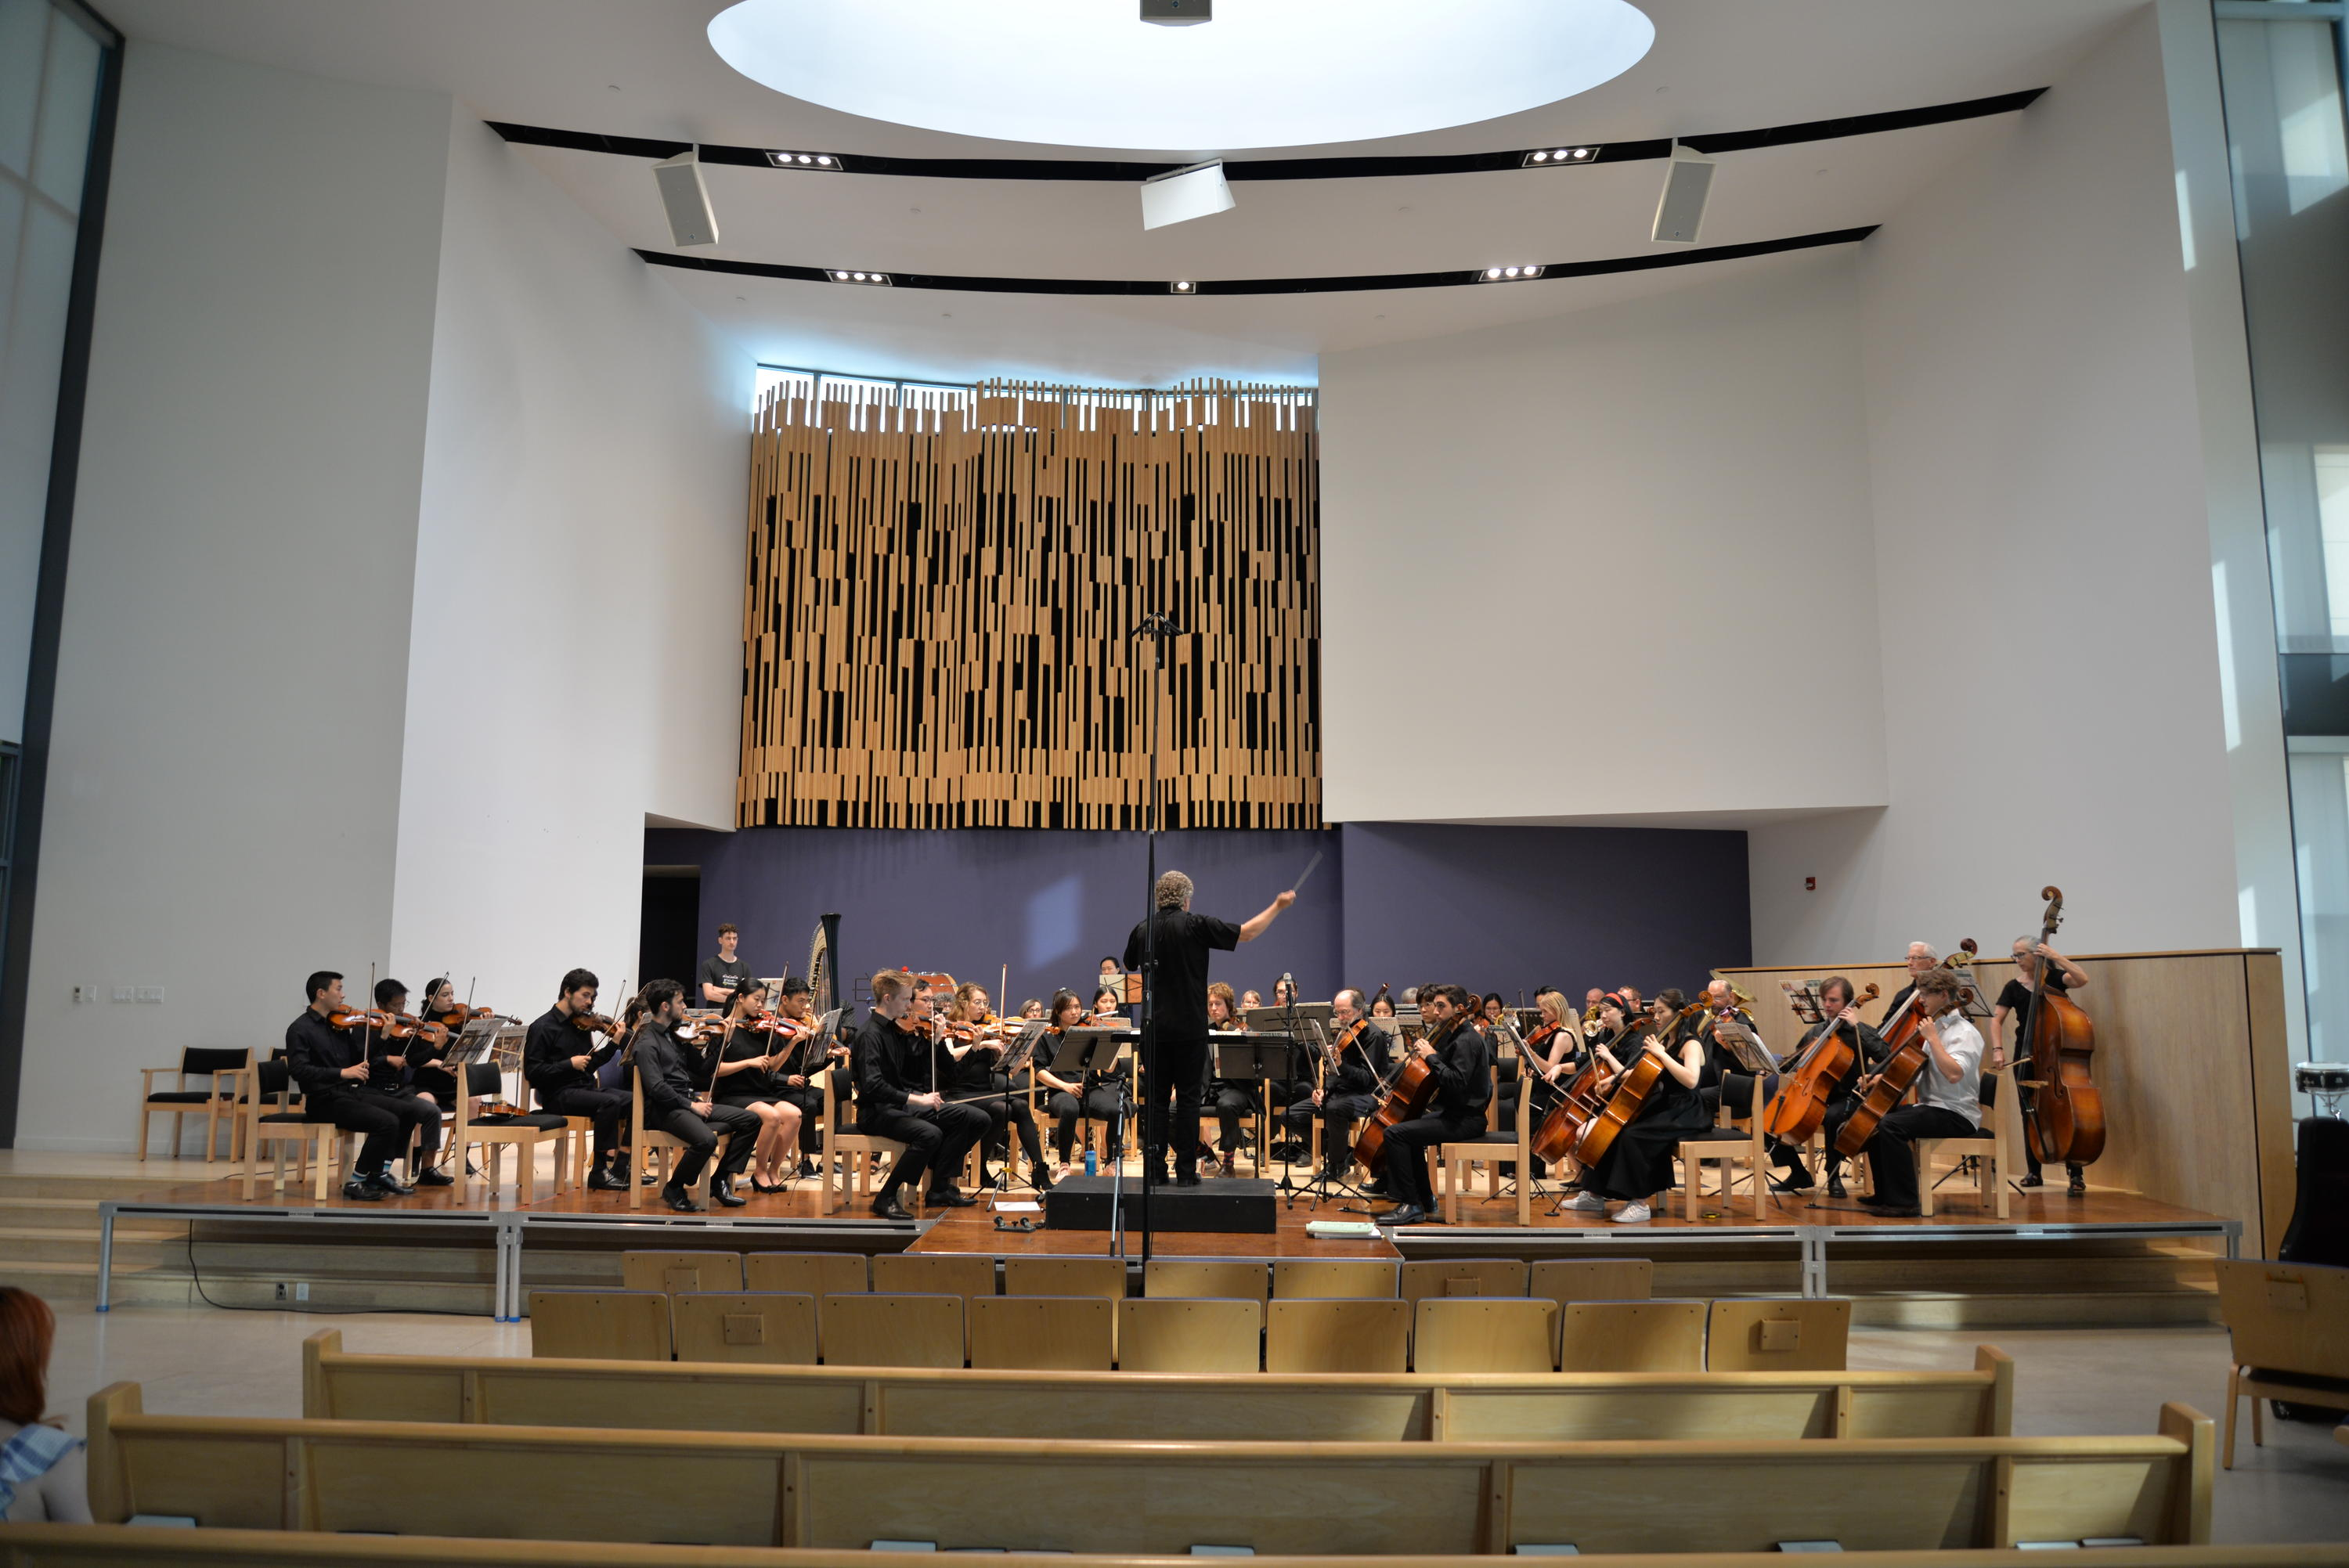 orchestra@uwaterloo